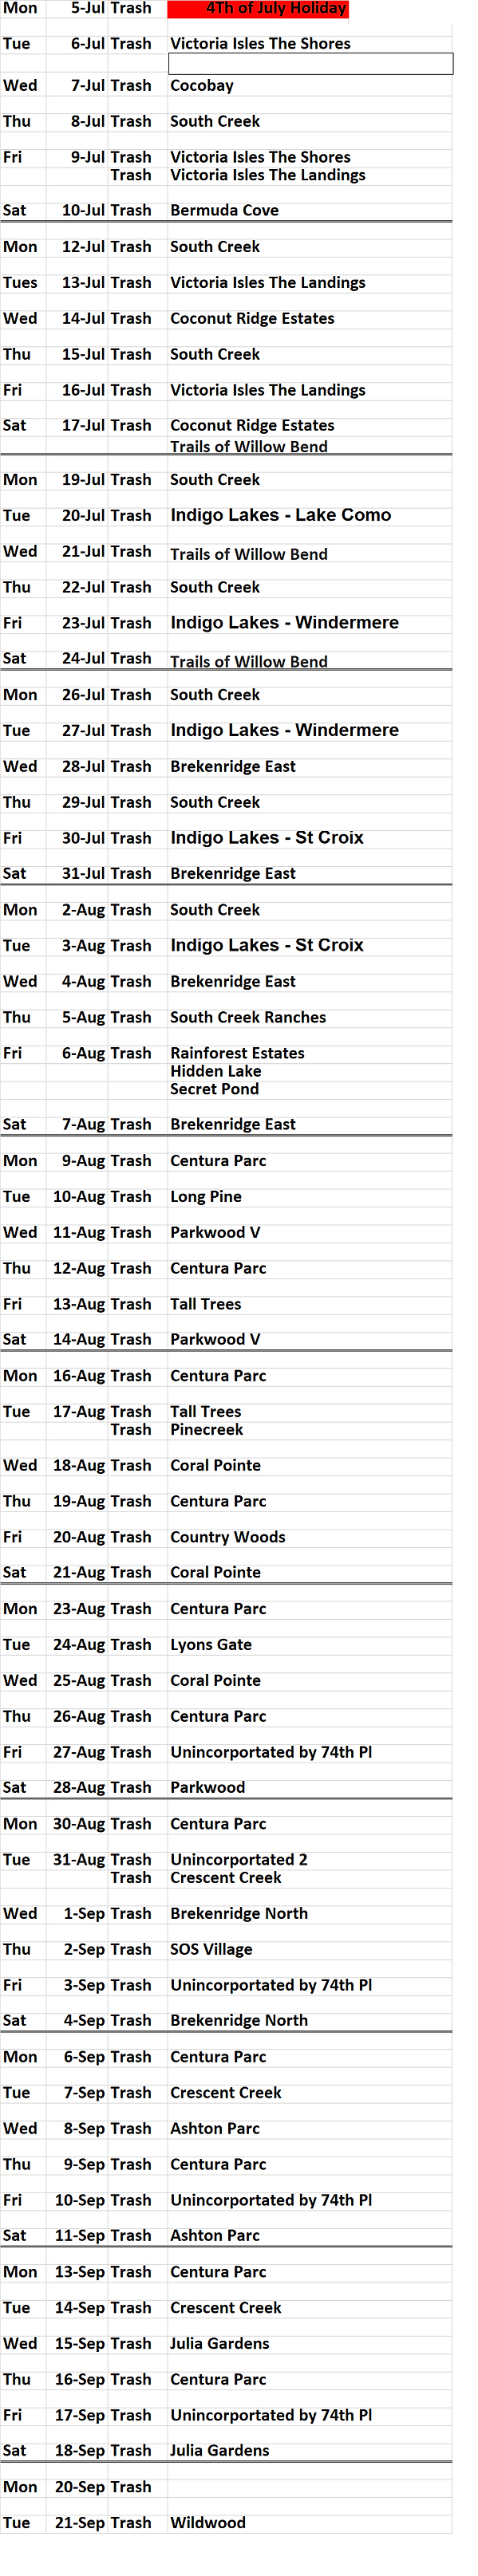 Wix Schedule July 5.21.png